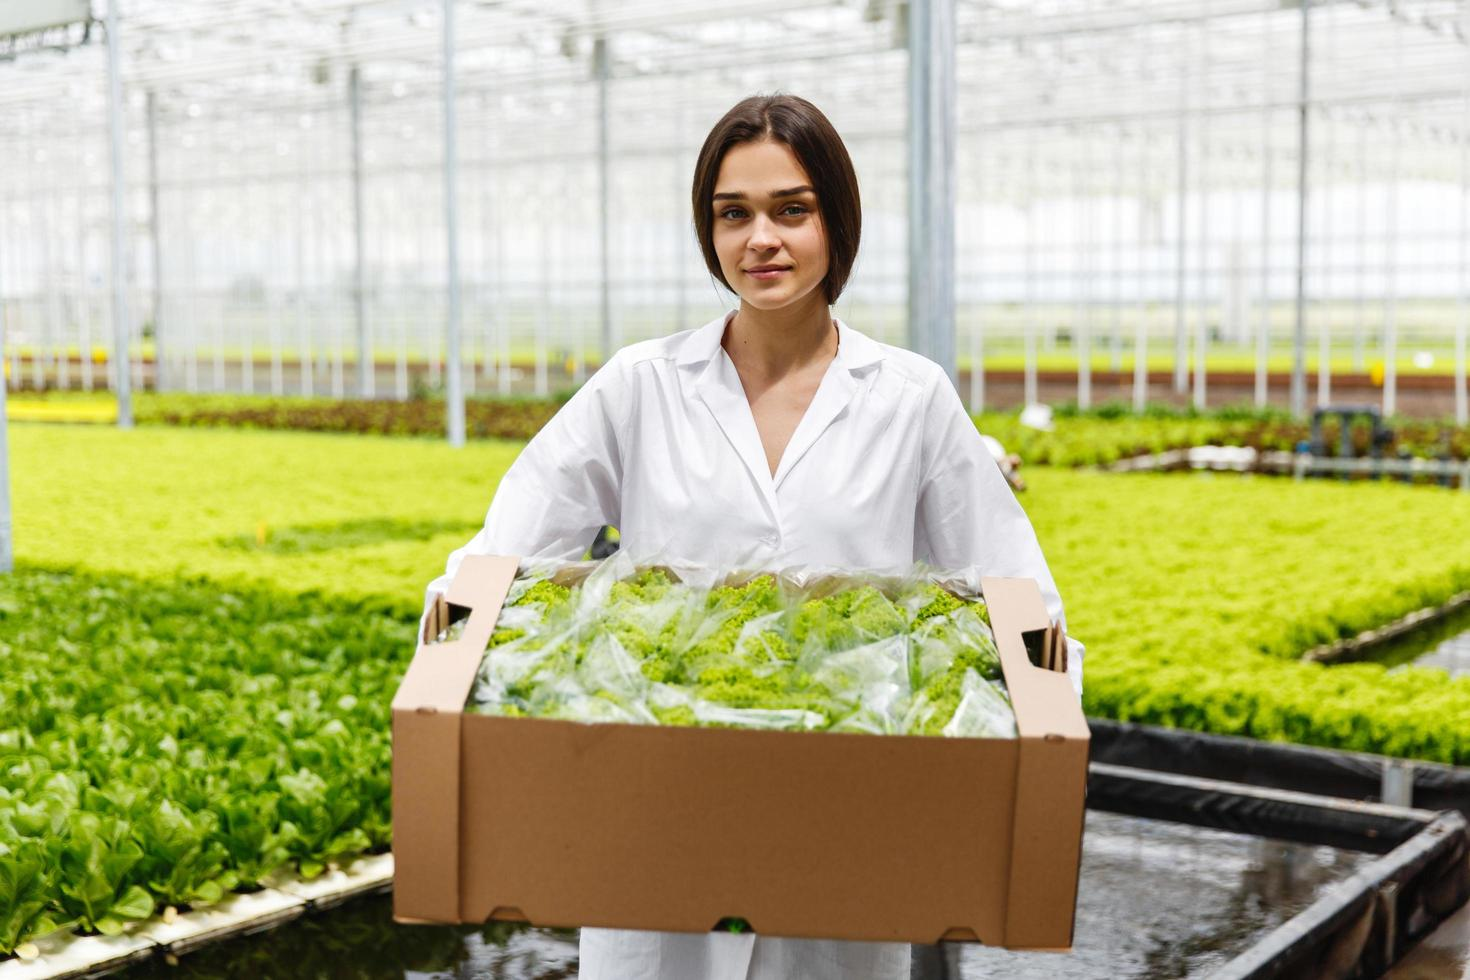 Woman holding a box of lettuce photo